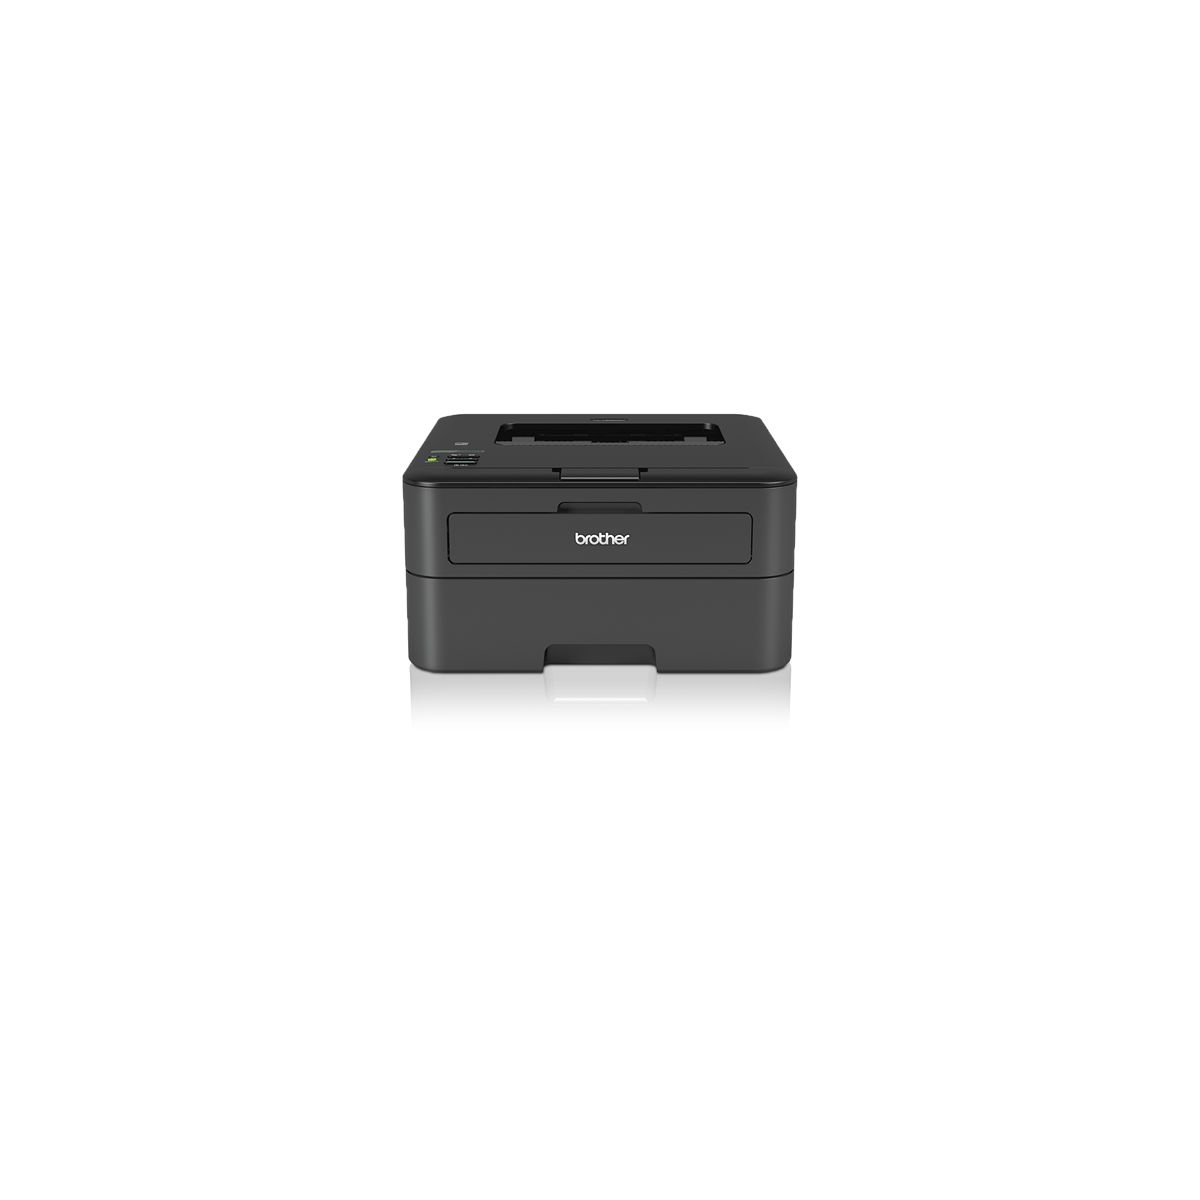 Imprimante monofonction laser monochrome brother hl-l2360dn - 15% de remise imm�diate avec le code : noel15 (photo)